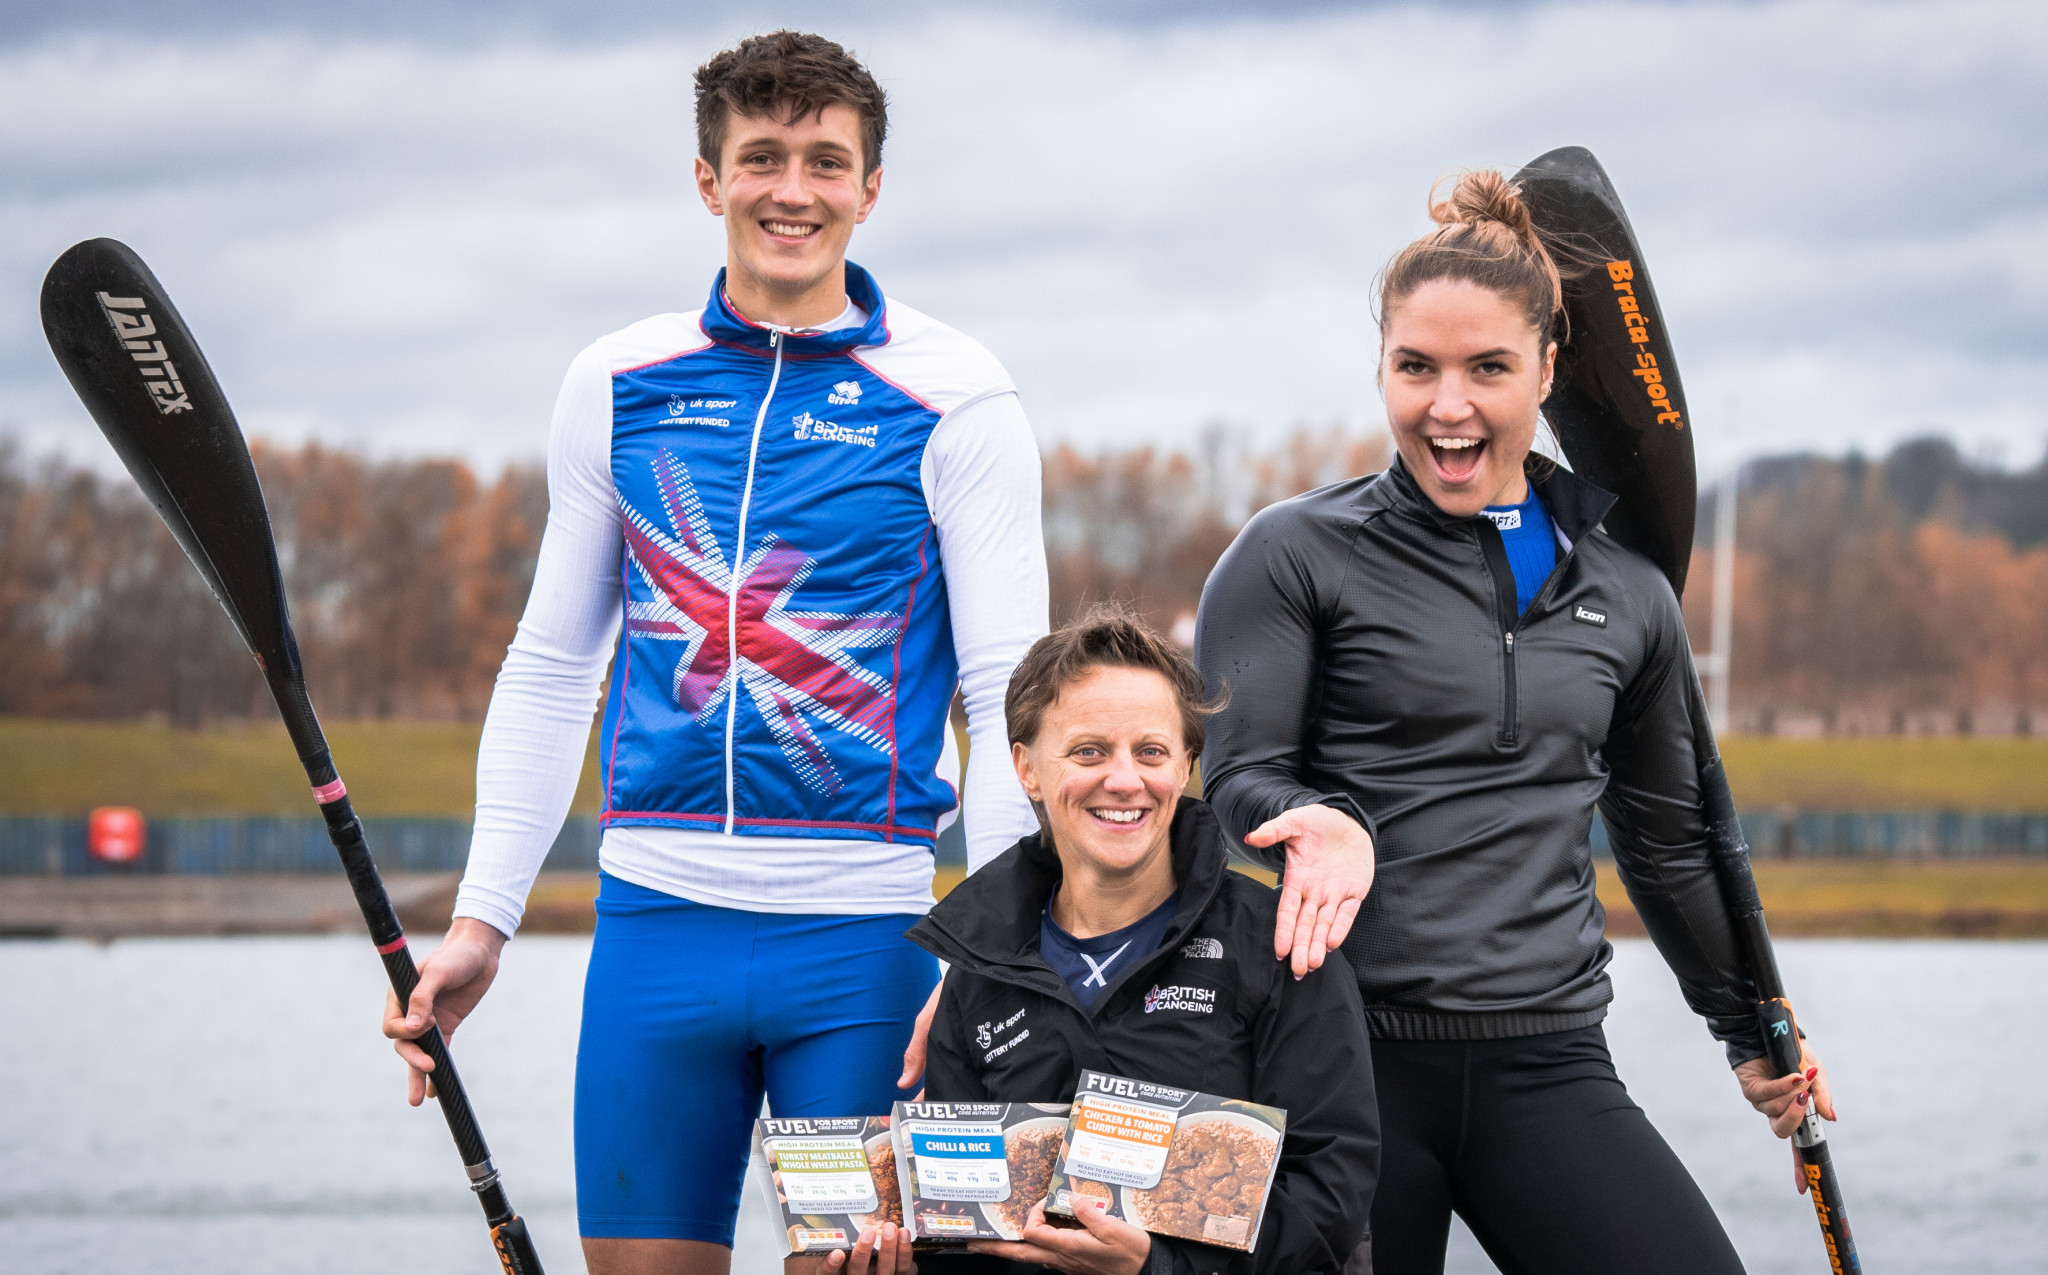 British Canoeing announce Fuel for Sport as official performance meal provider